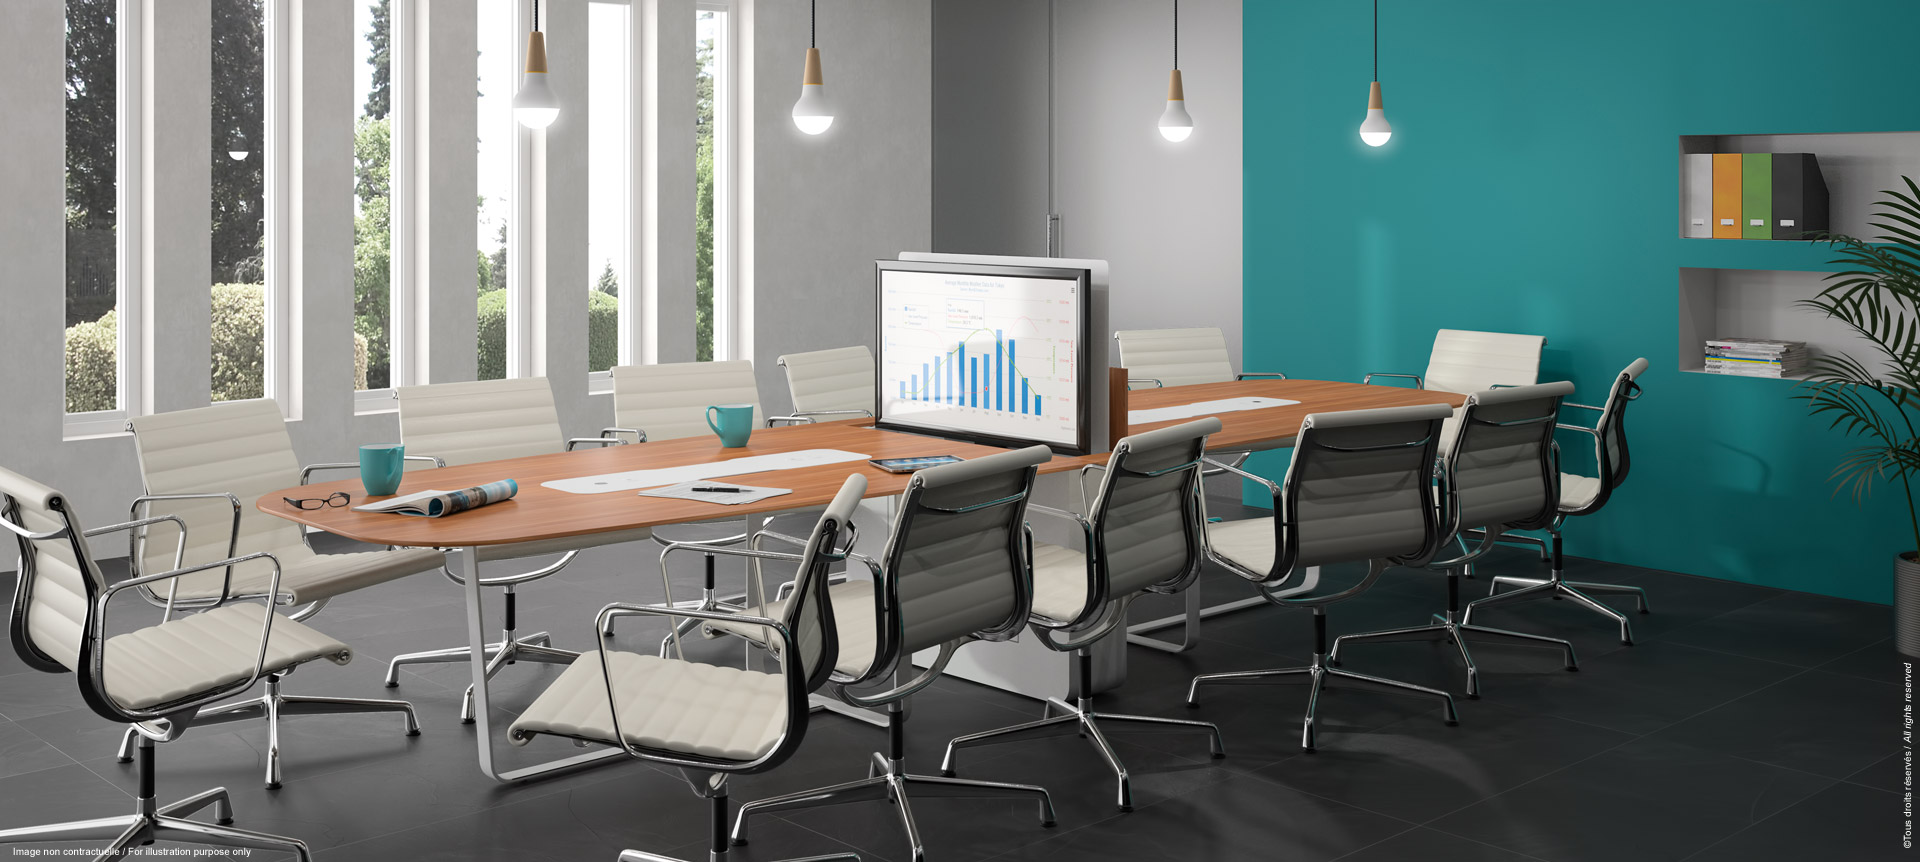 wemeet mixed meeting table for retractable screen craie design. Black Bedroom Furniture Sets. Home Design Ideas